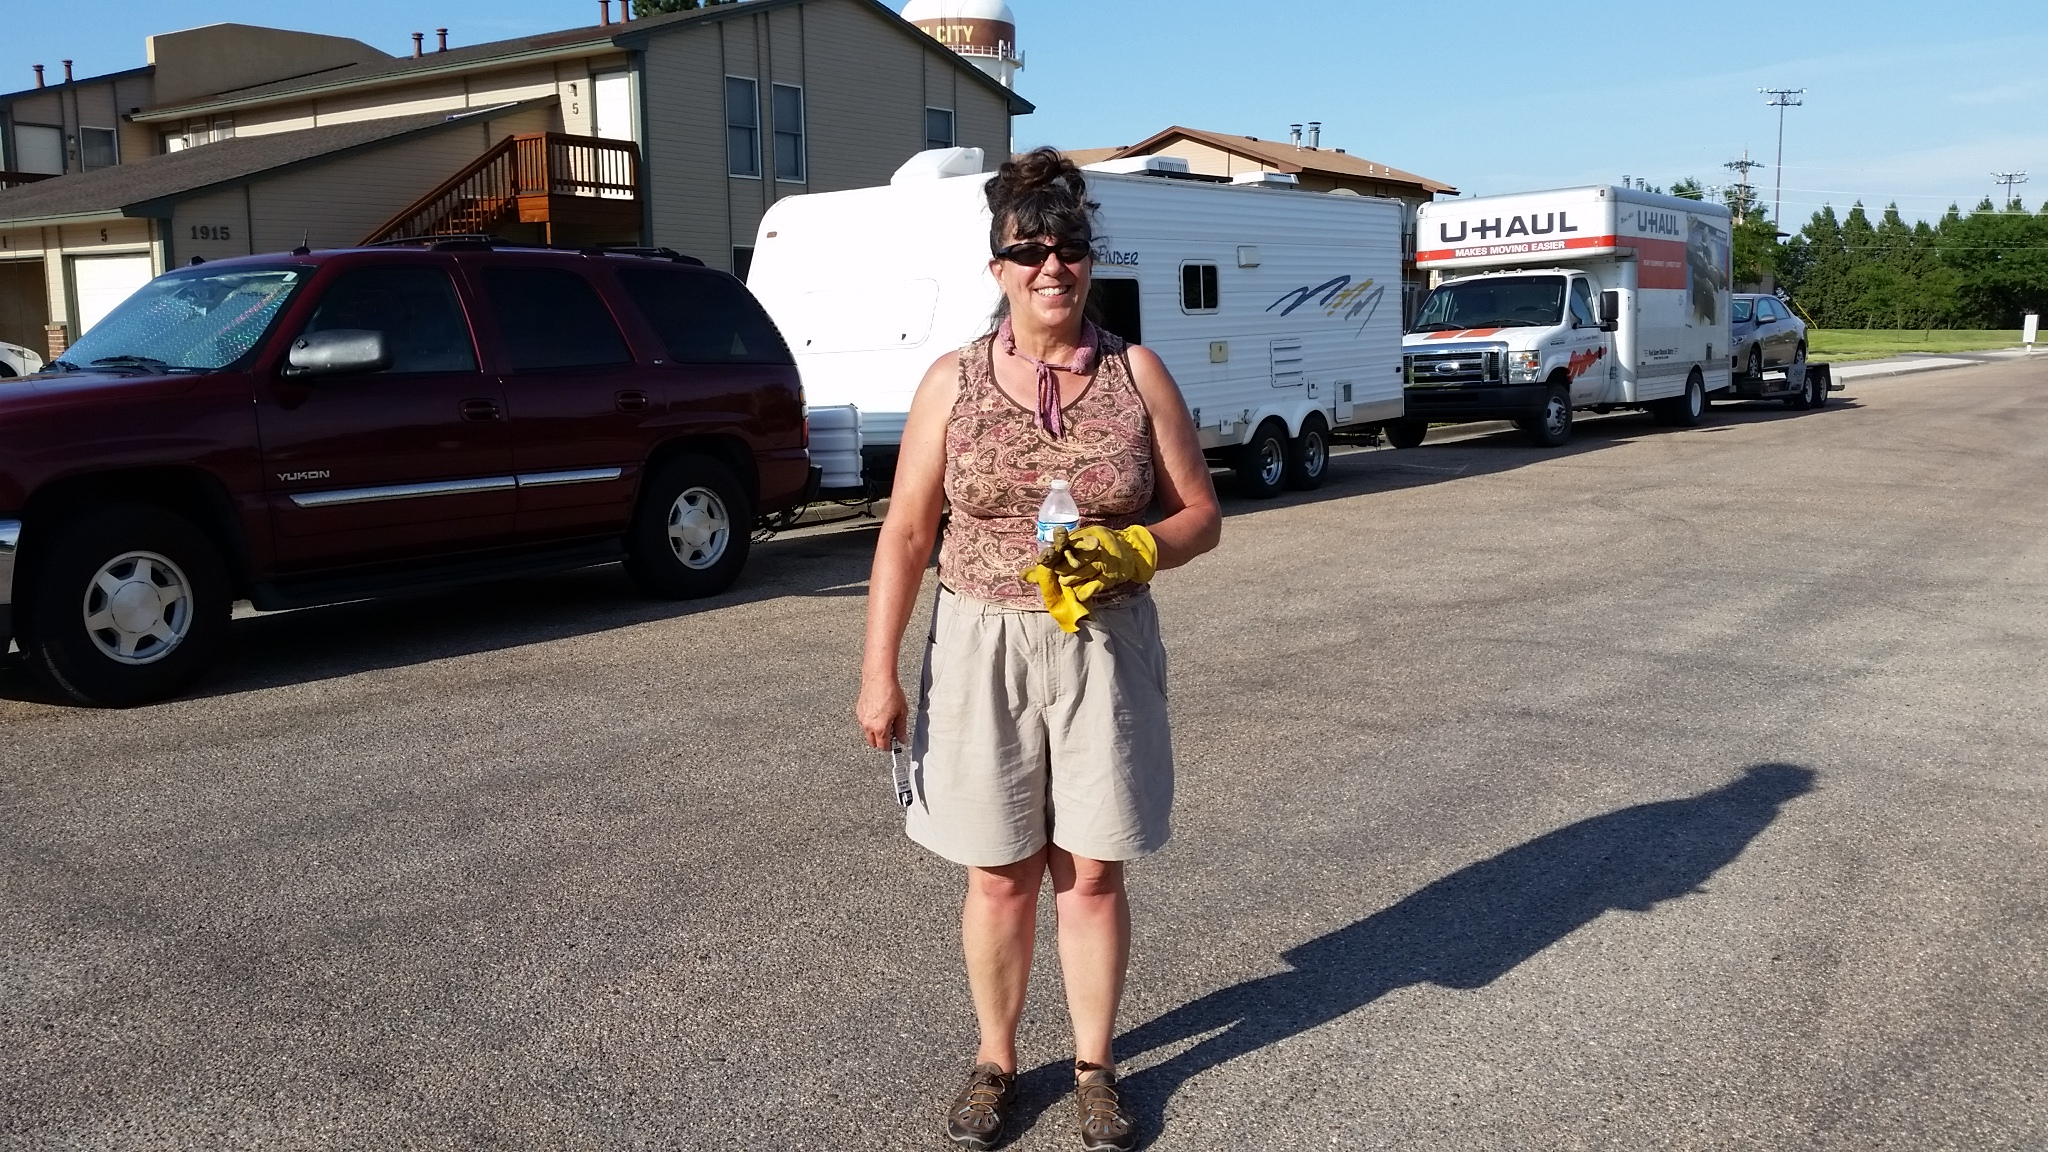 2017-07-13 Sherry in caravan leaving Kansas